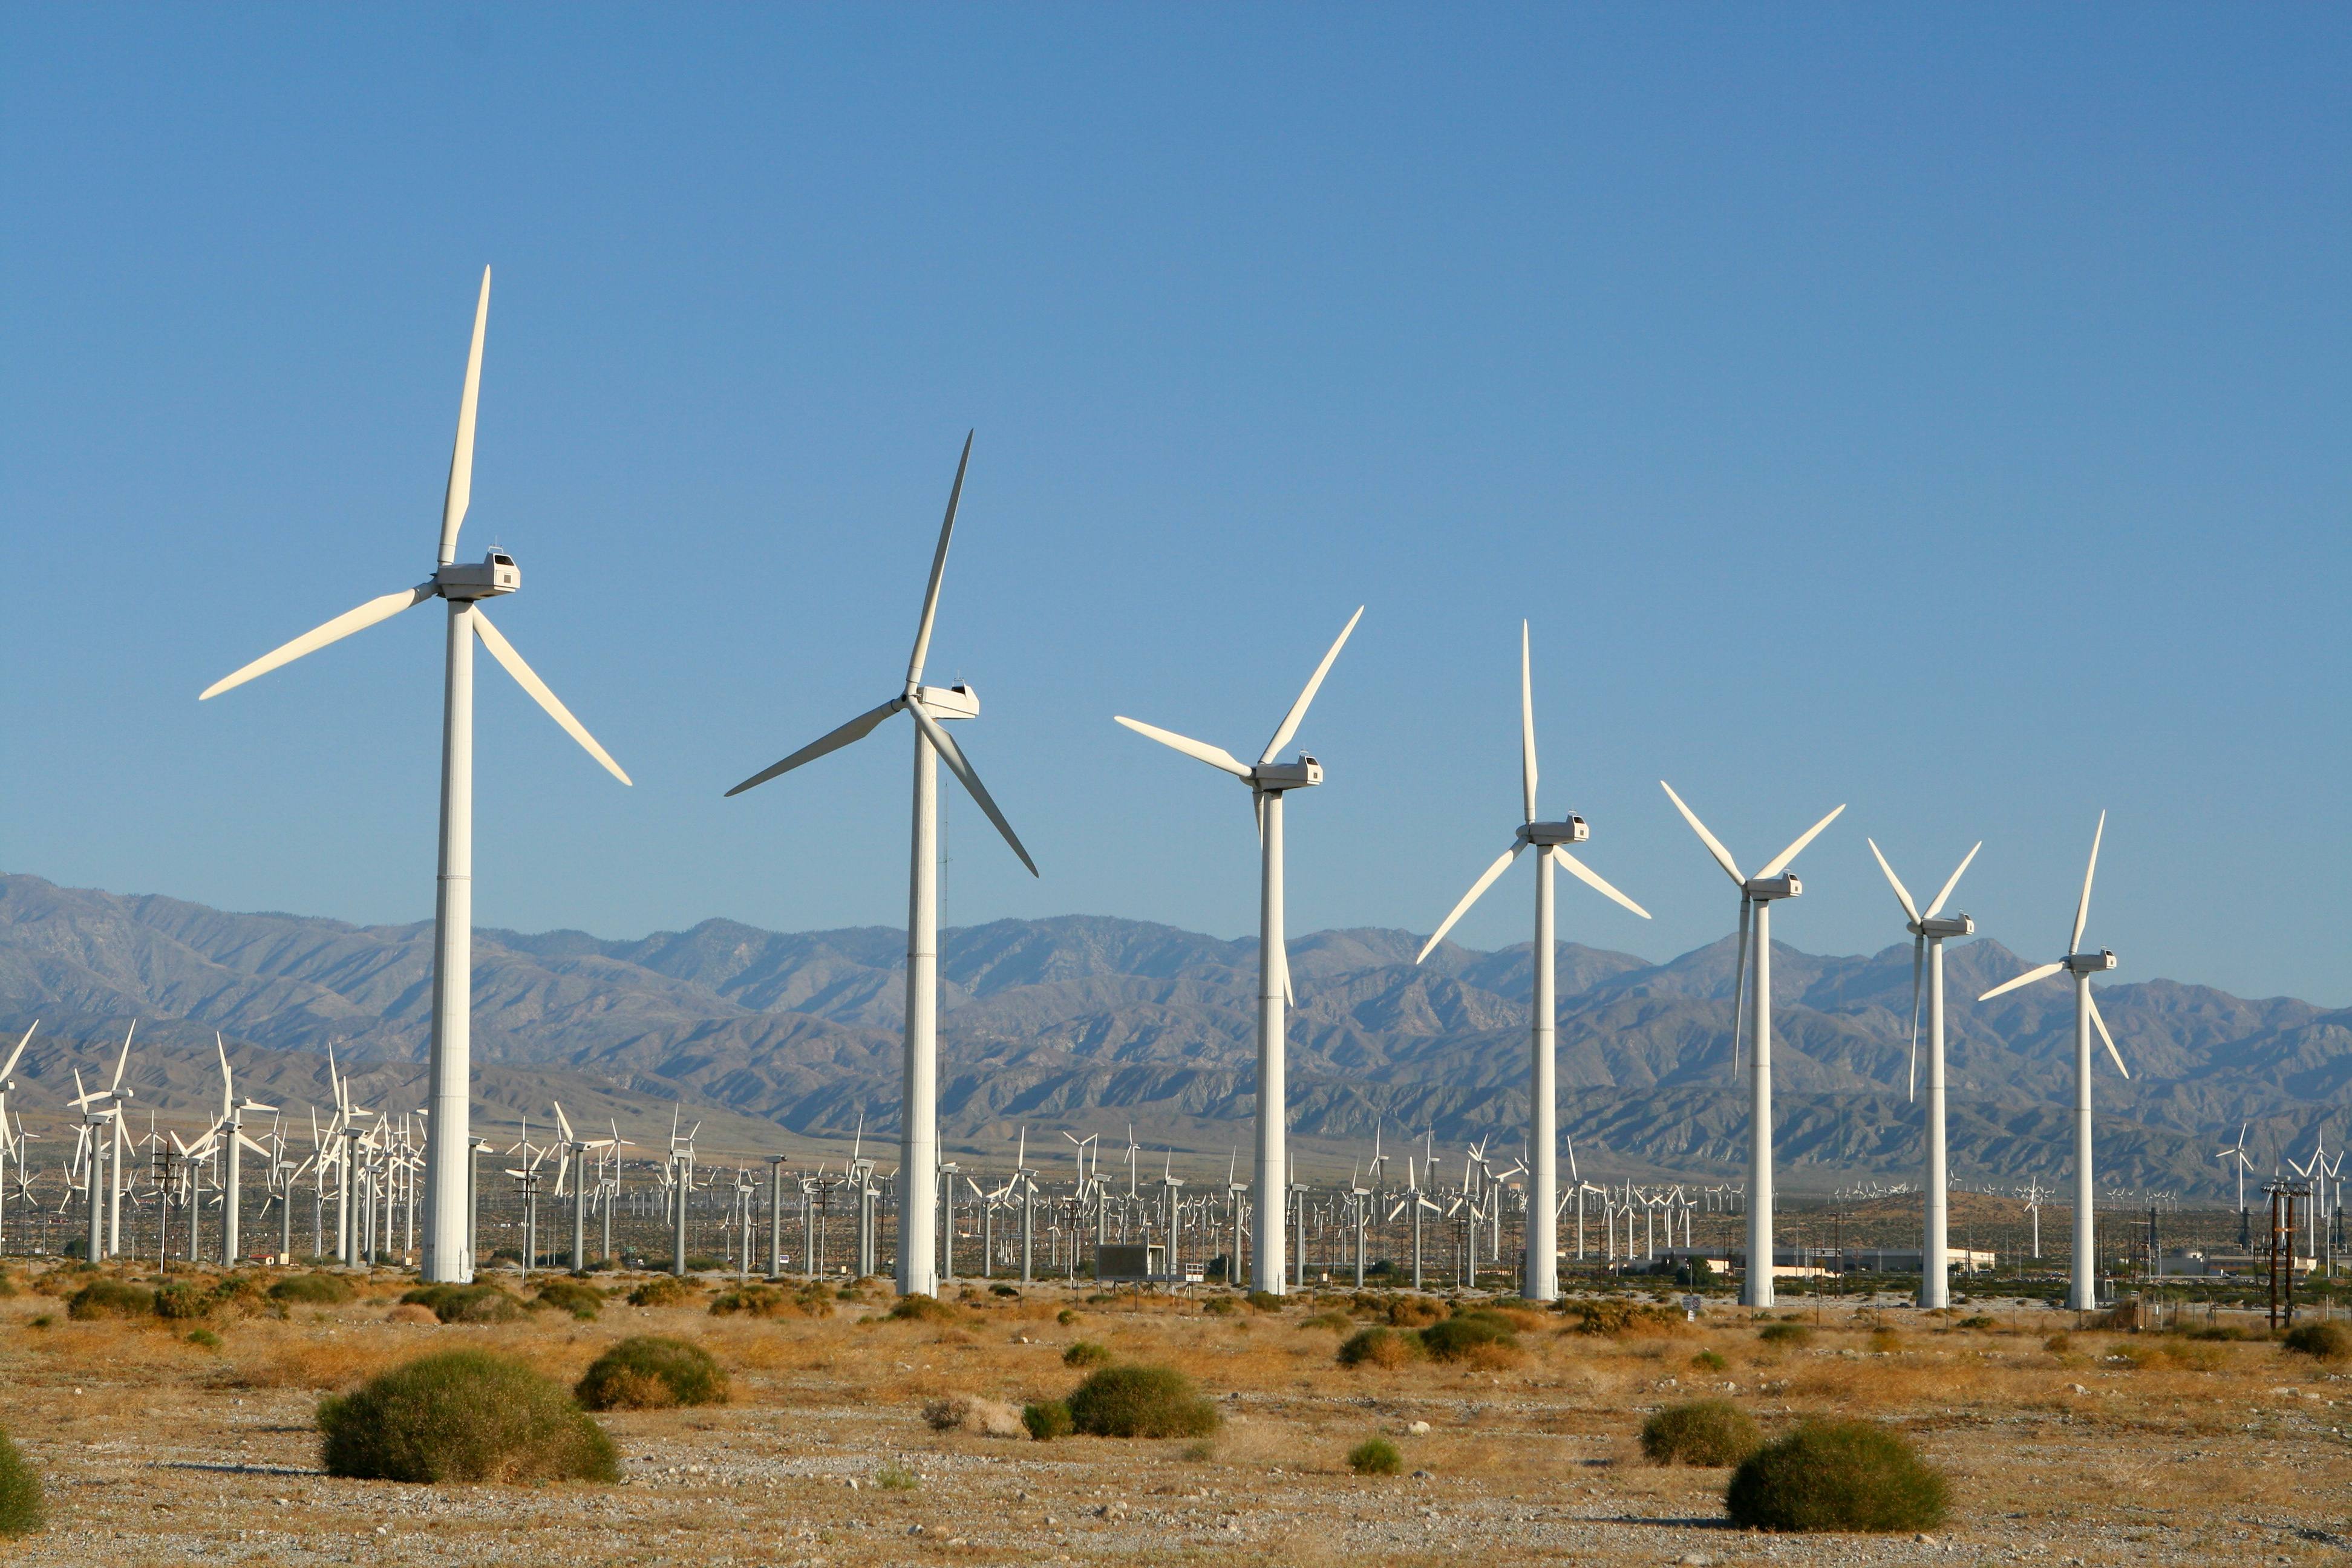 Operational condition of wind turbines in California for 86% of the time in first quarter of 2015. Image courtesy of DollarPhotoClub.com